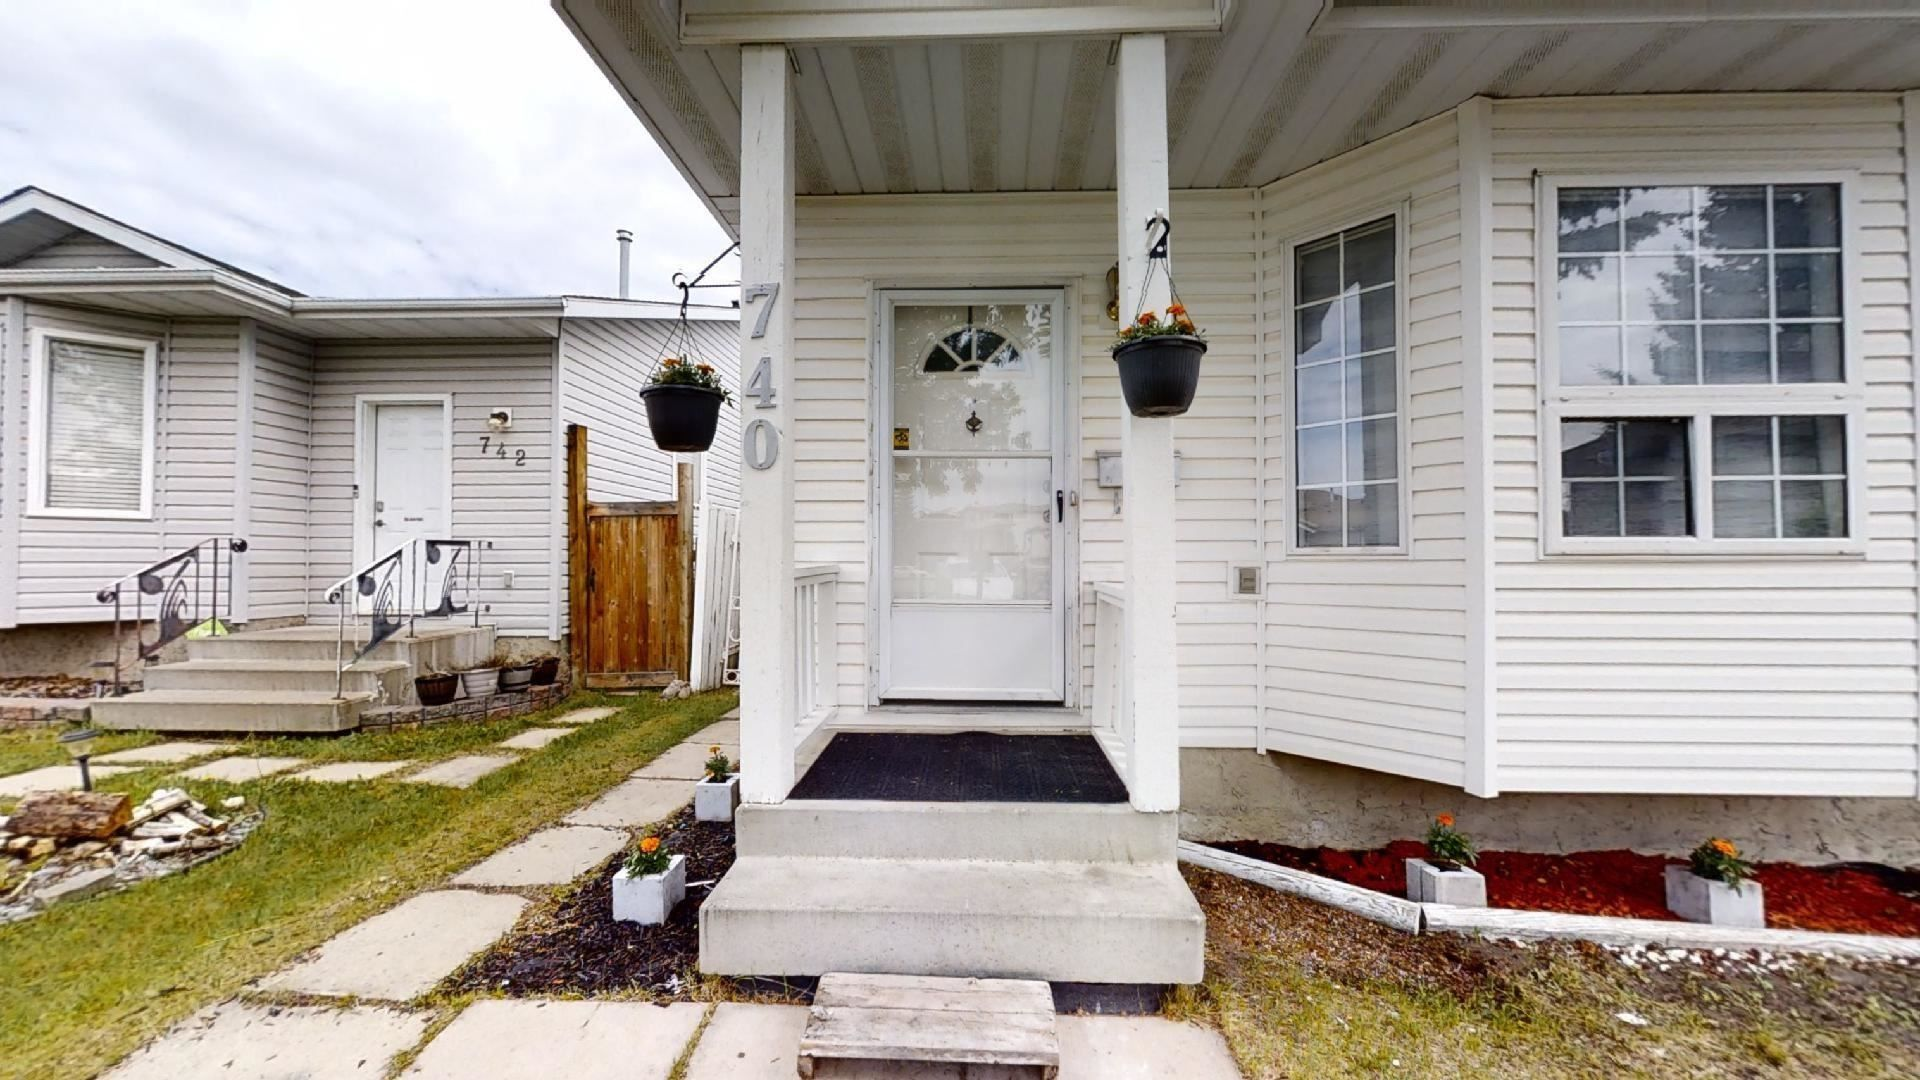 Main Photo: 740 JOHNS Road in Edmonton: Zone 29 House for sale : MLS®# E4250629